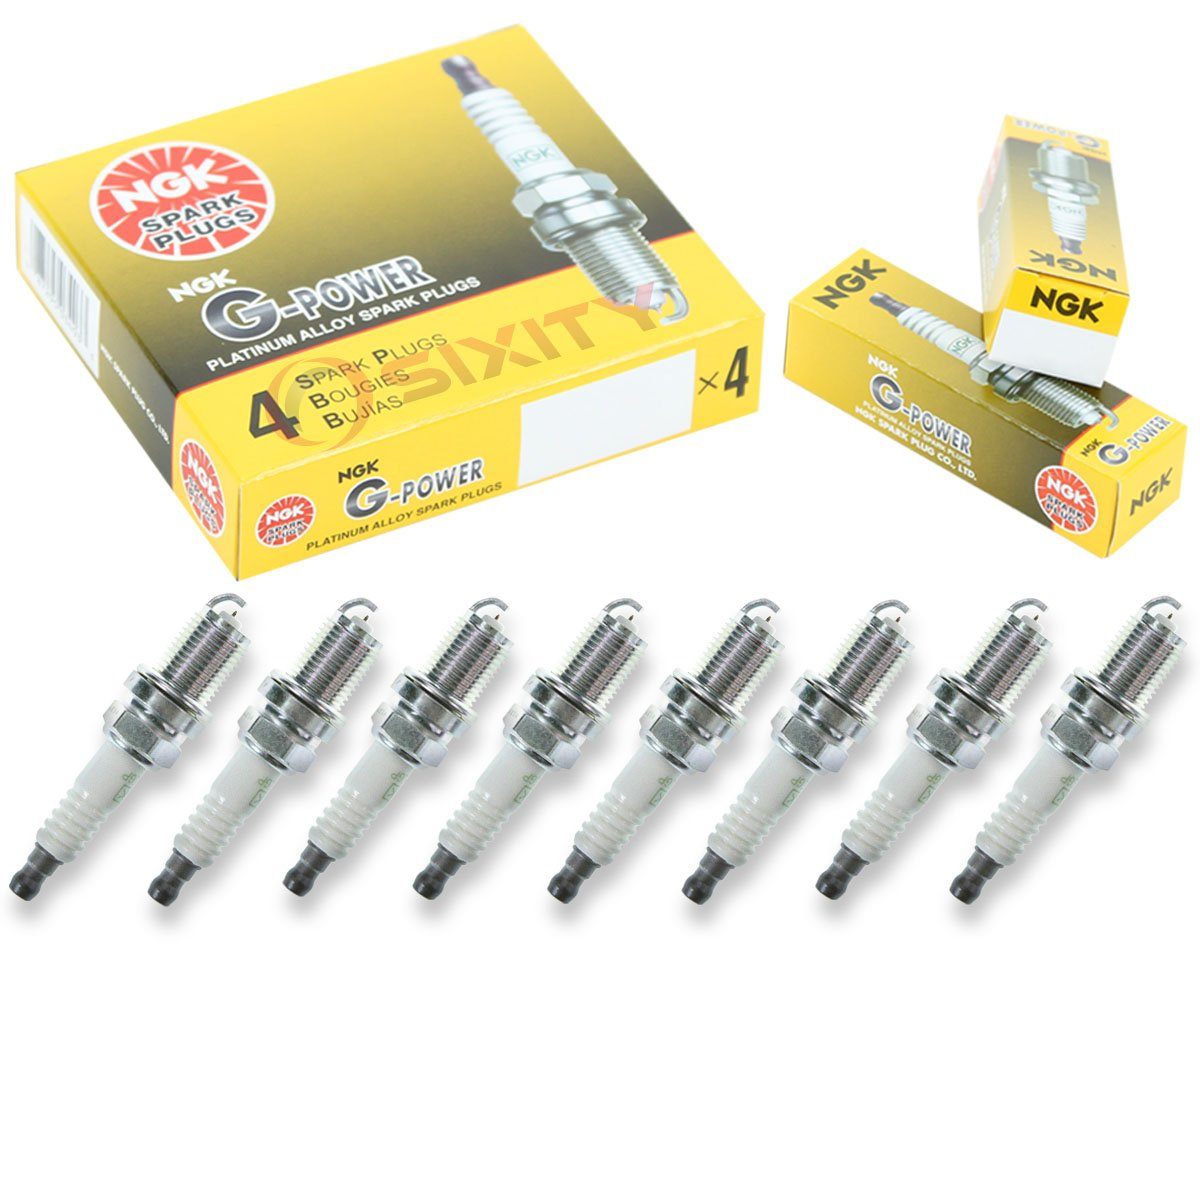 Amazon.com: NGK G-Power 8pcs Spark Plugs Toyota Tundra 00-09 4.7L V8 Kit Set Tune Up: Automotive